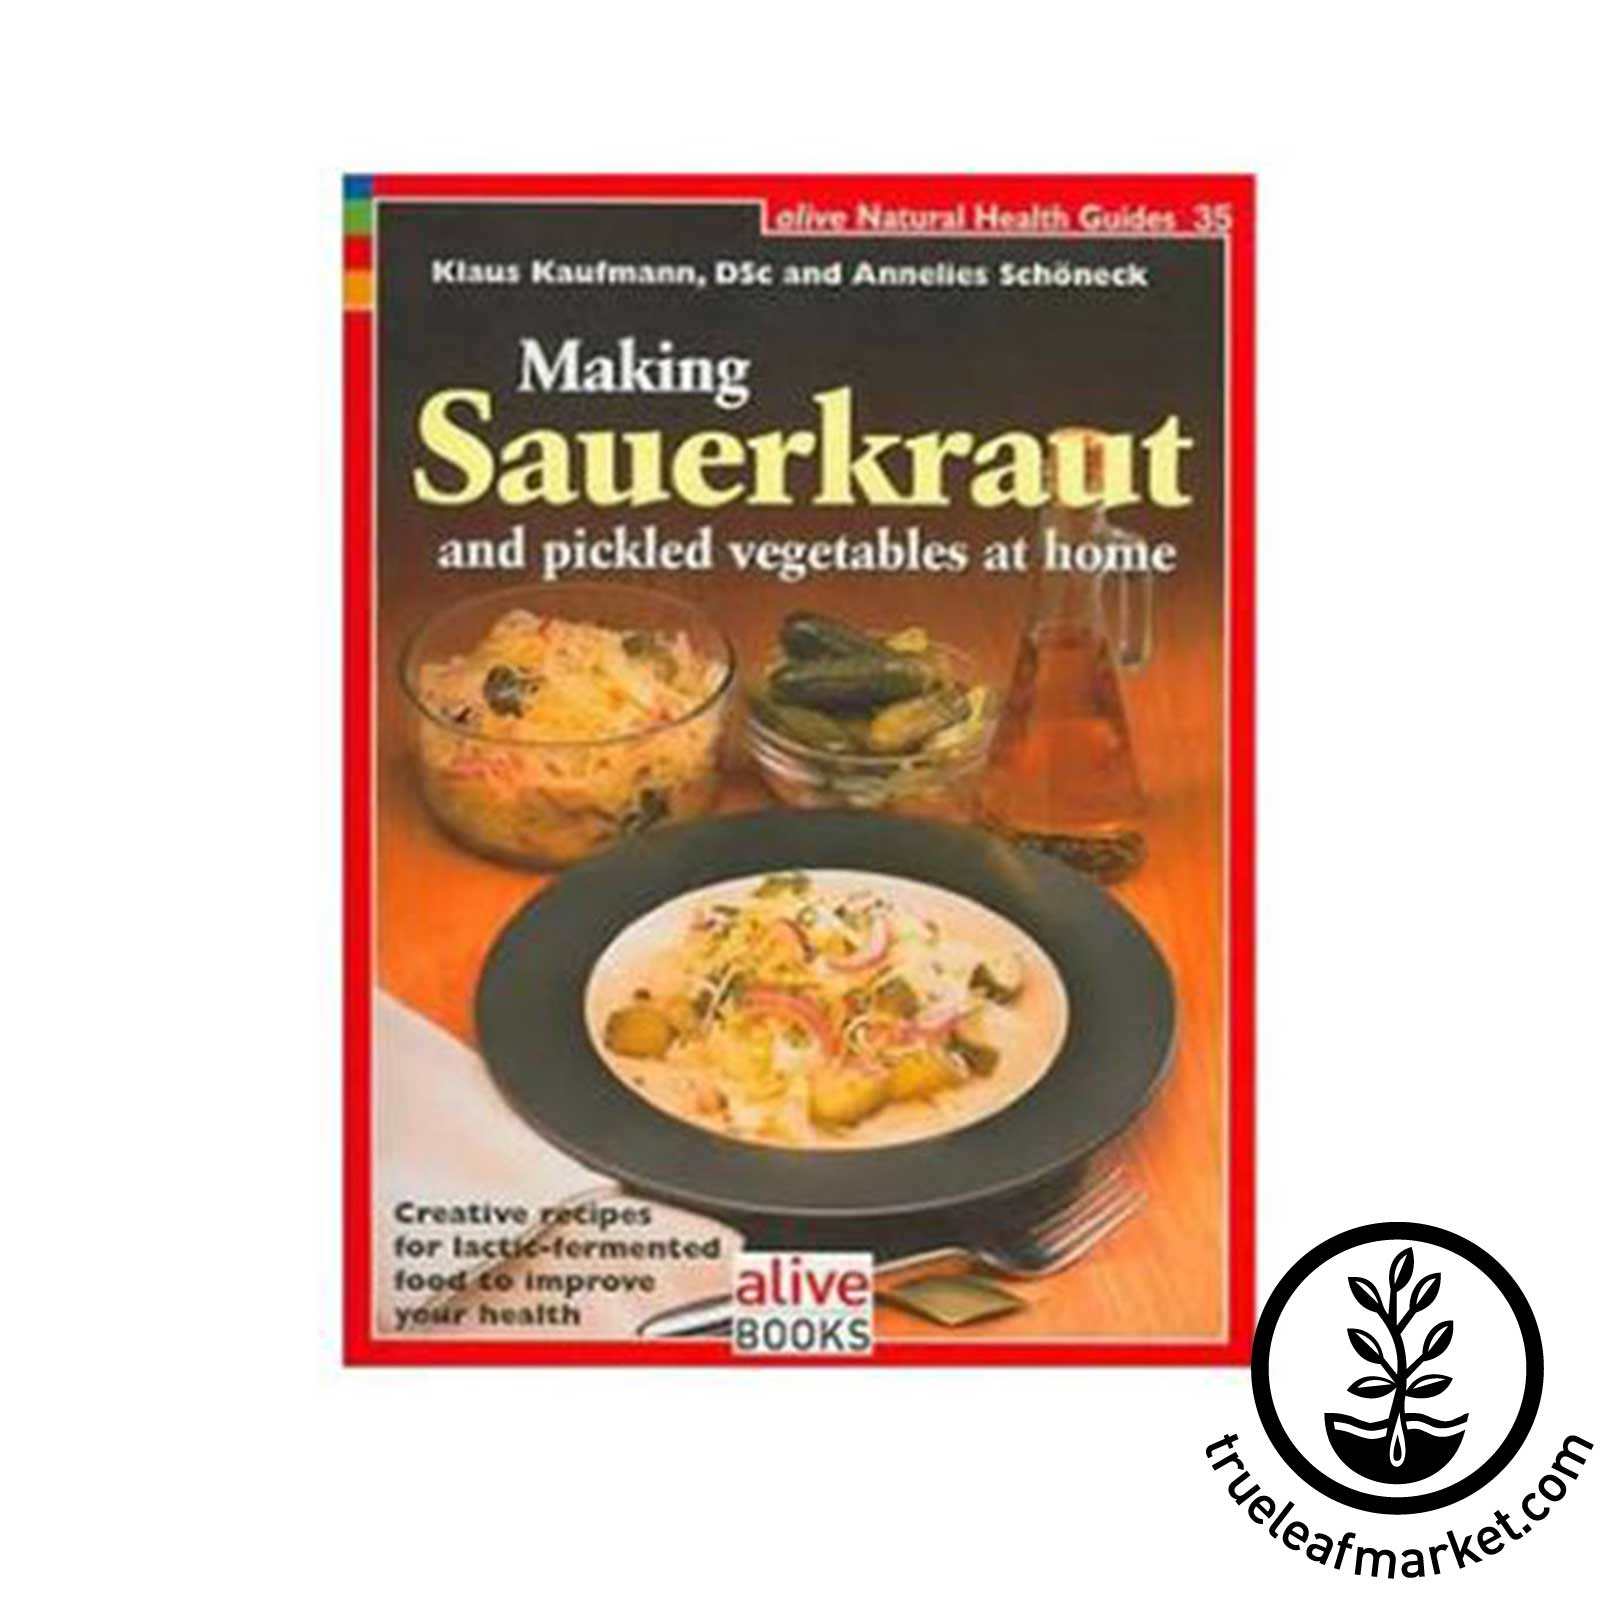 Making Sauerkraut Book by Klaus Kaufmann & Annelies Schoneck making sauerkraut, sauerkraut recipe book, how to make sauerkraut, pickled vegetables